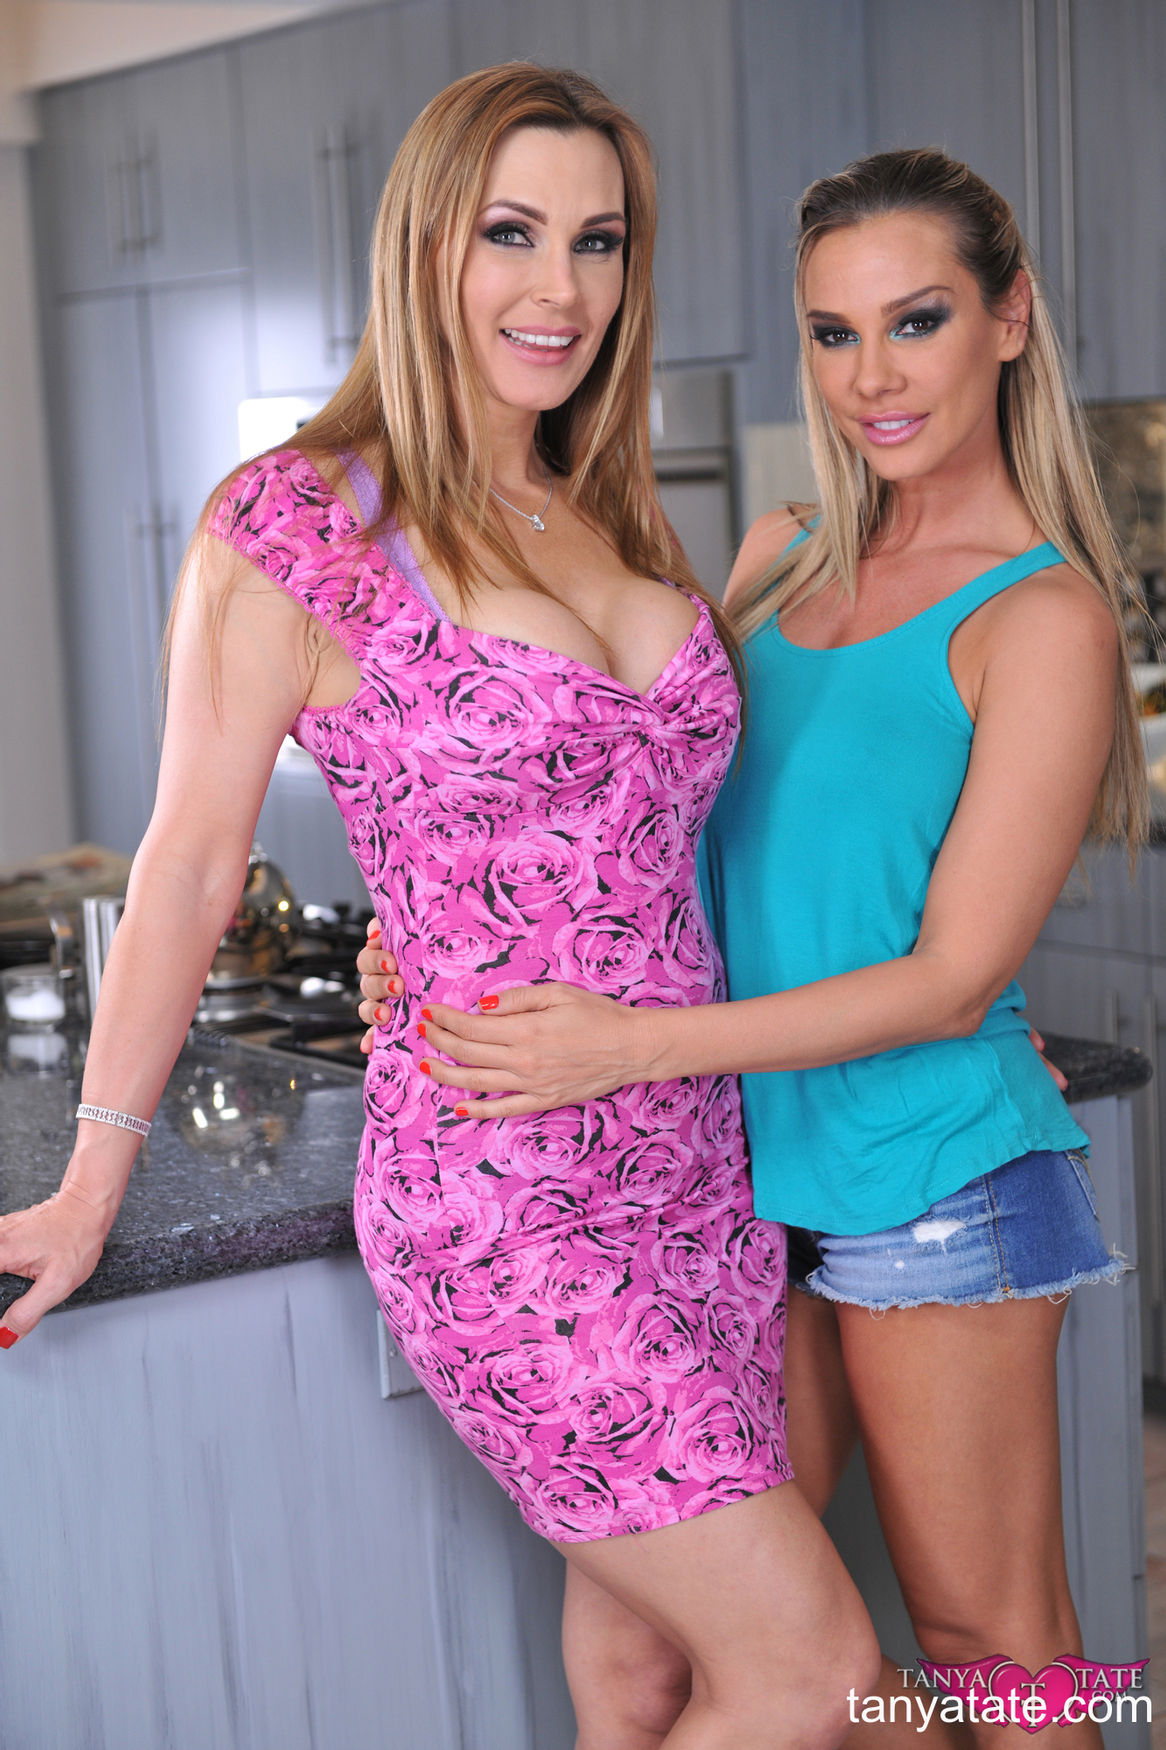 Amateur lesbian milf Sandra and her mature pornstar girlfriend Tanya Tate non nude flirt from Ta ...